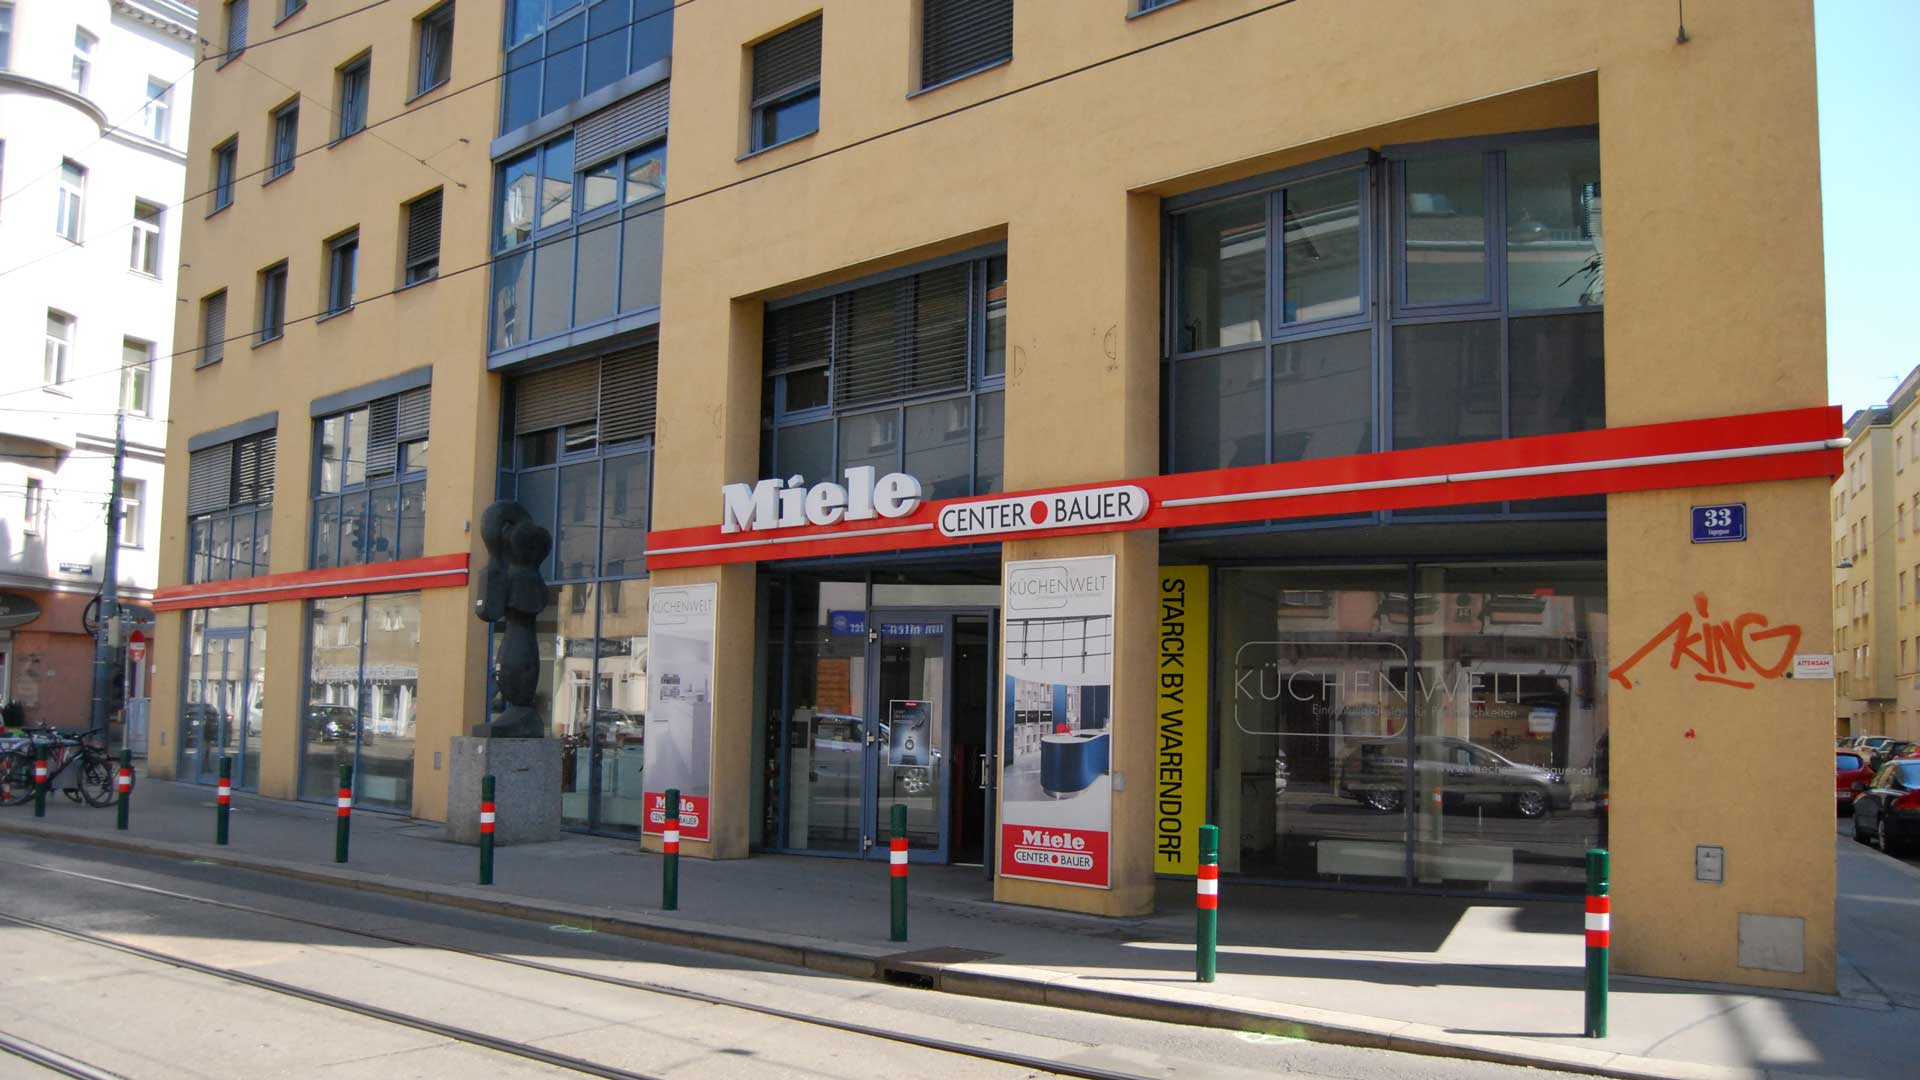 Miele Center Bauer in Wien 1030